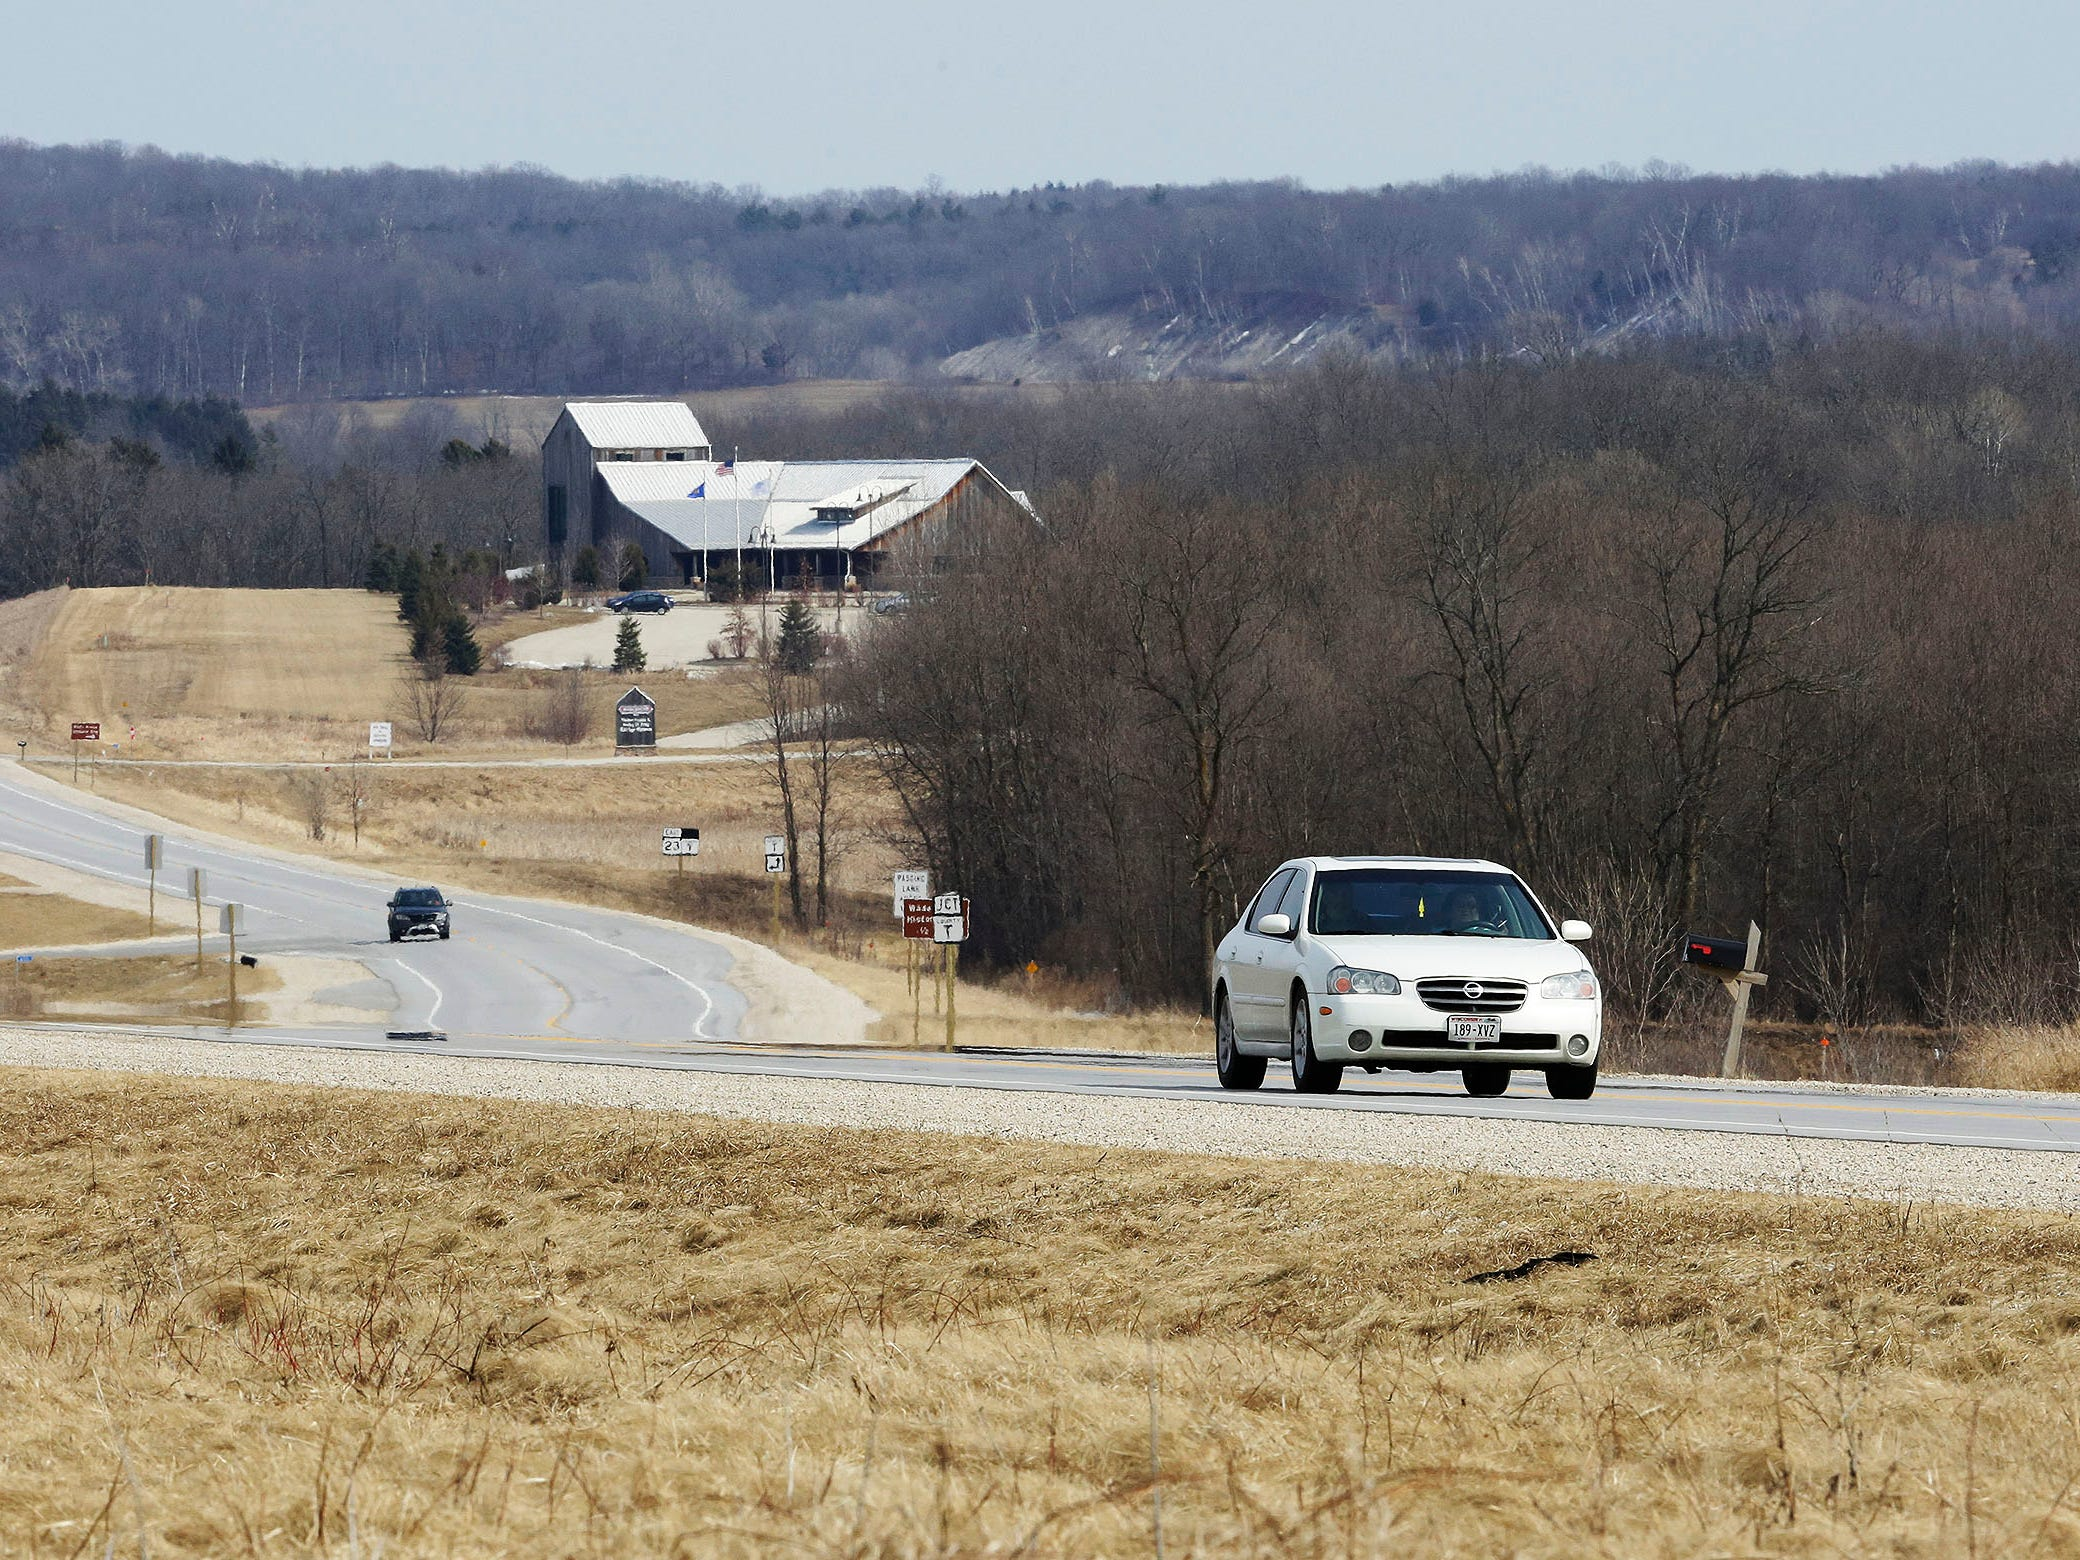 A vehicle travels west near the Wade House Historic site along state Highway 23, Wednesday, March 27, 2019, near Greenbush, Wis.